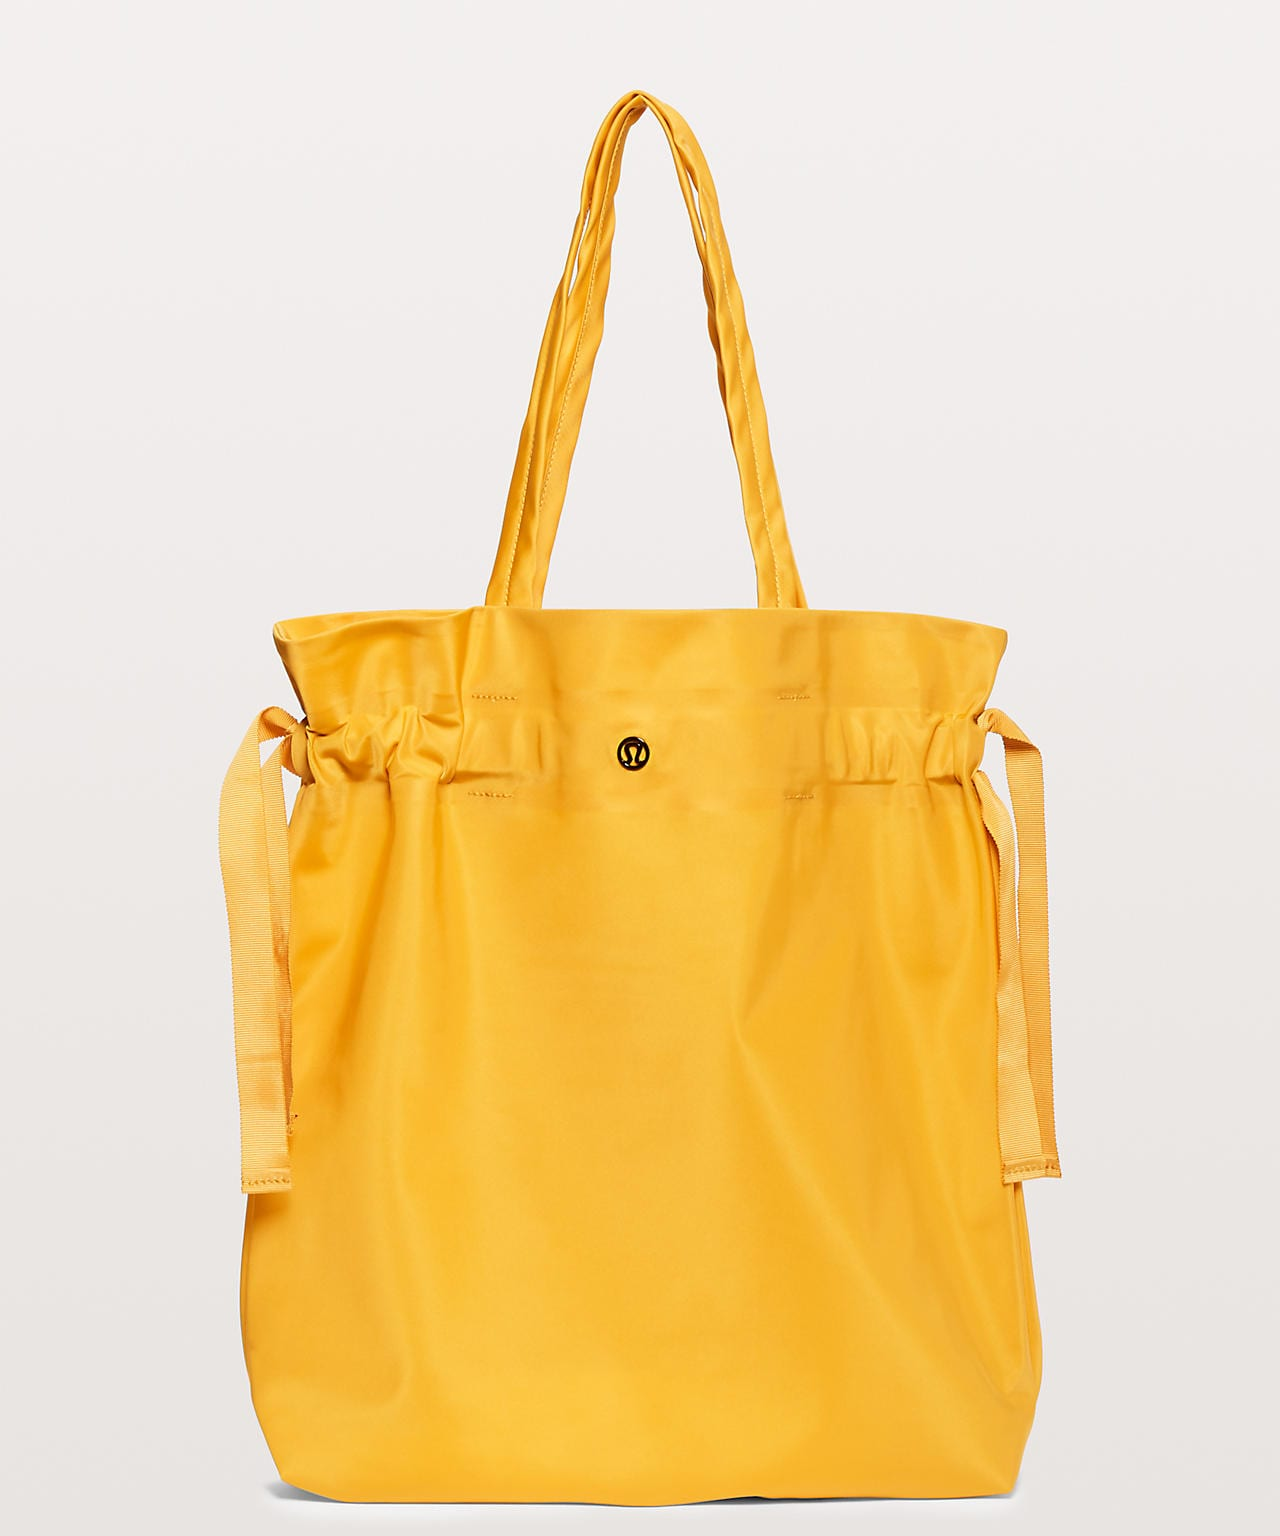 Easy As Sunday Tote